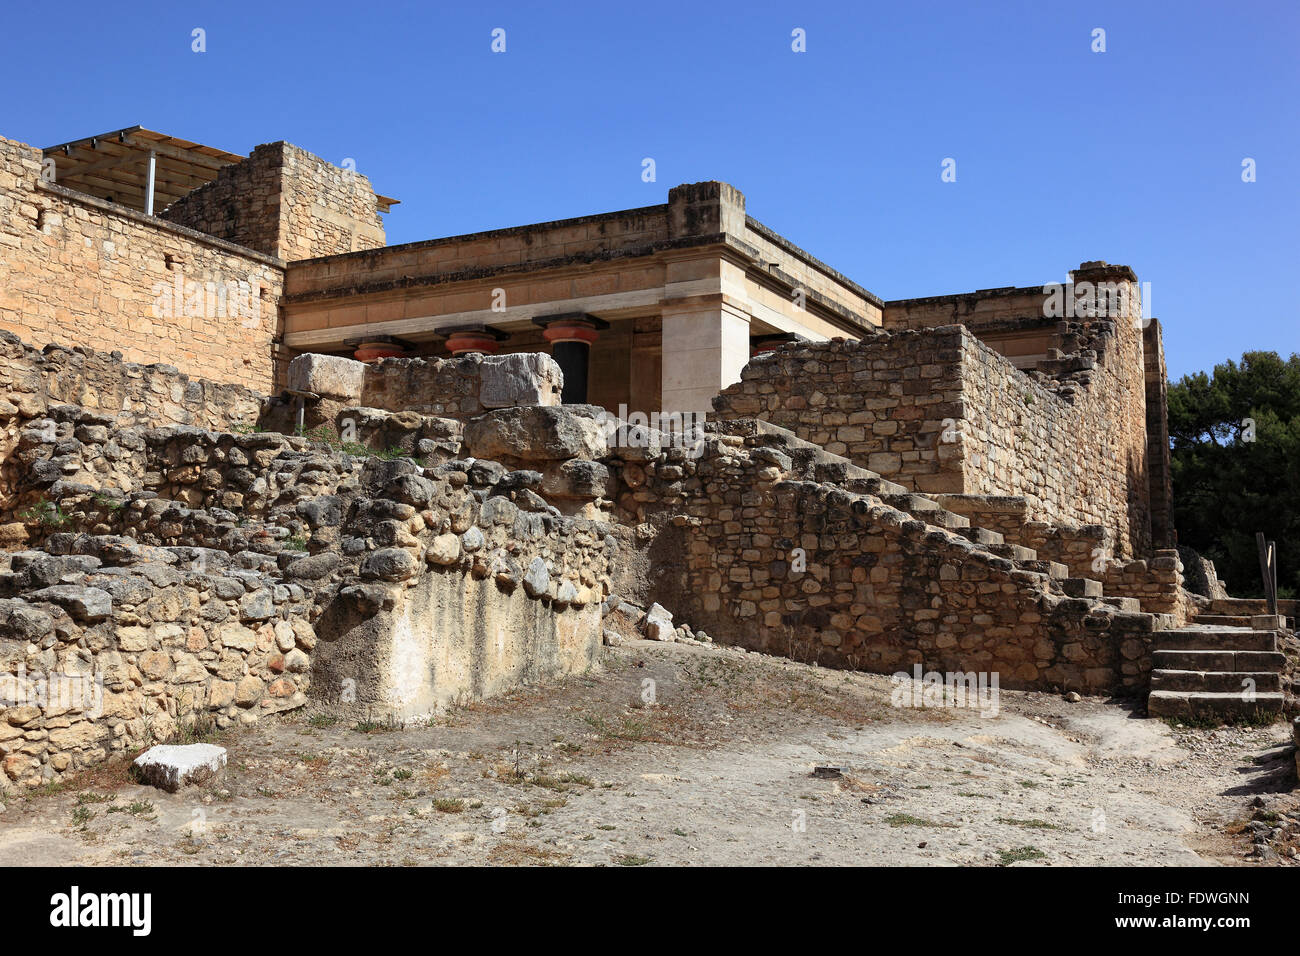 Crete, Knossos, palace complex of the Minoer, The sound of stand-in Axes, hall of the double ax, reconstructions - Stock Image